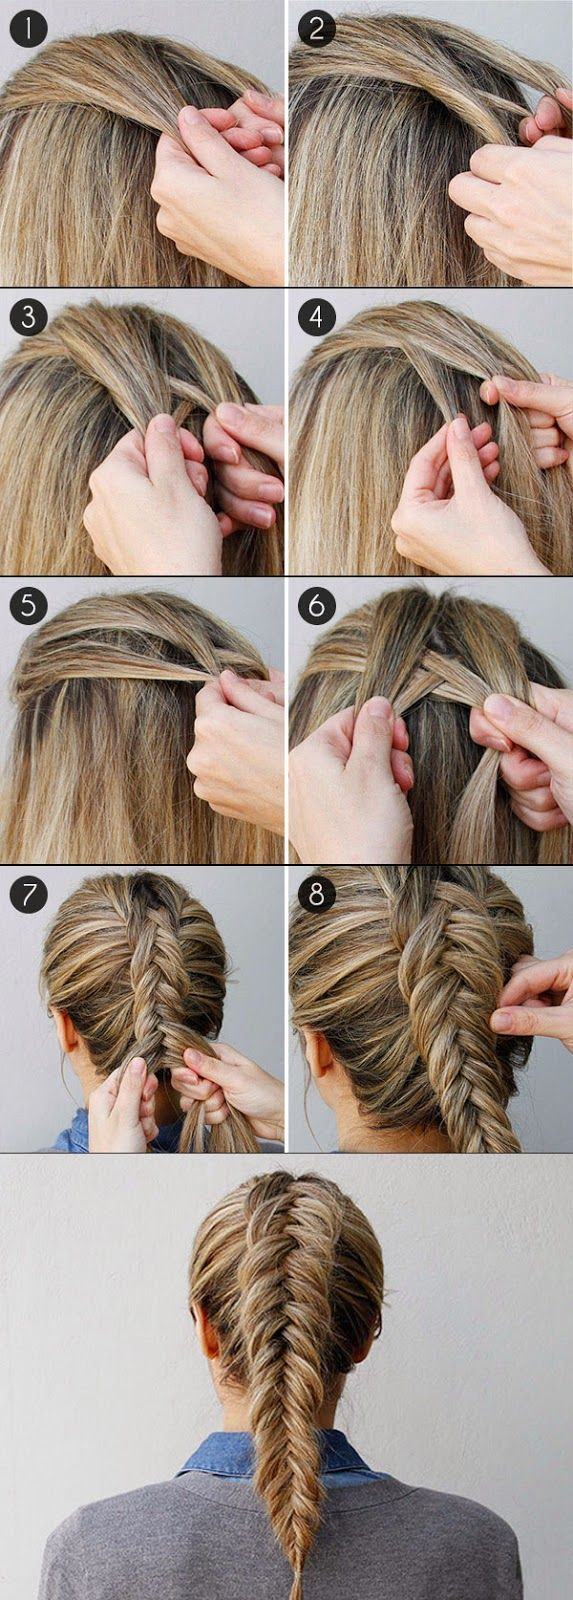 Enjoyable Braided Hairstyles Hairstyles And Braids On Pinterest Short Hairstyles Gunalazisus